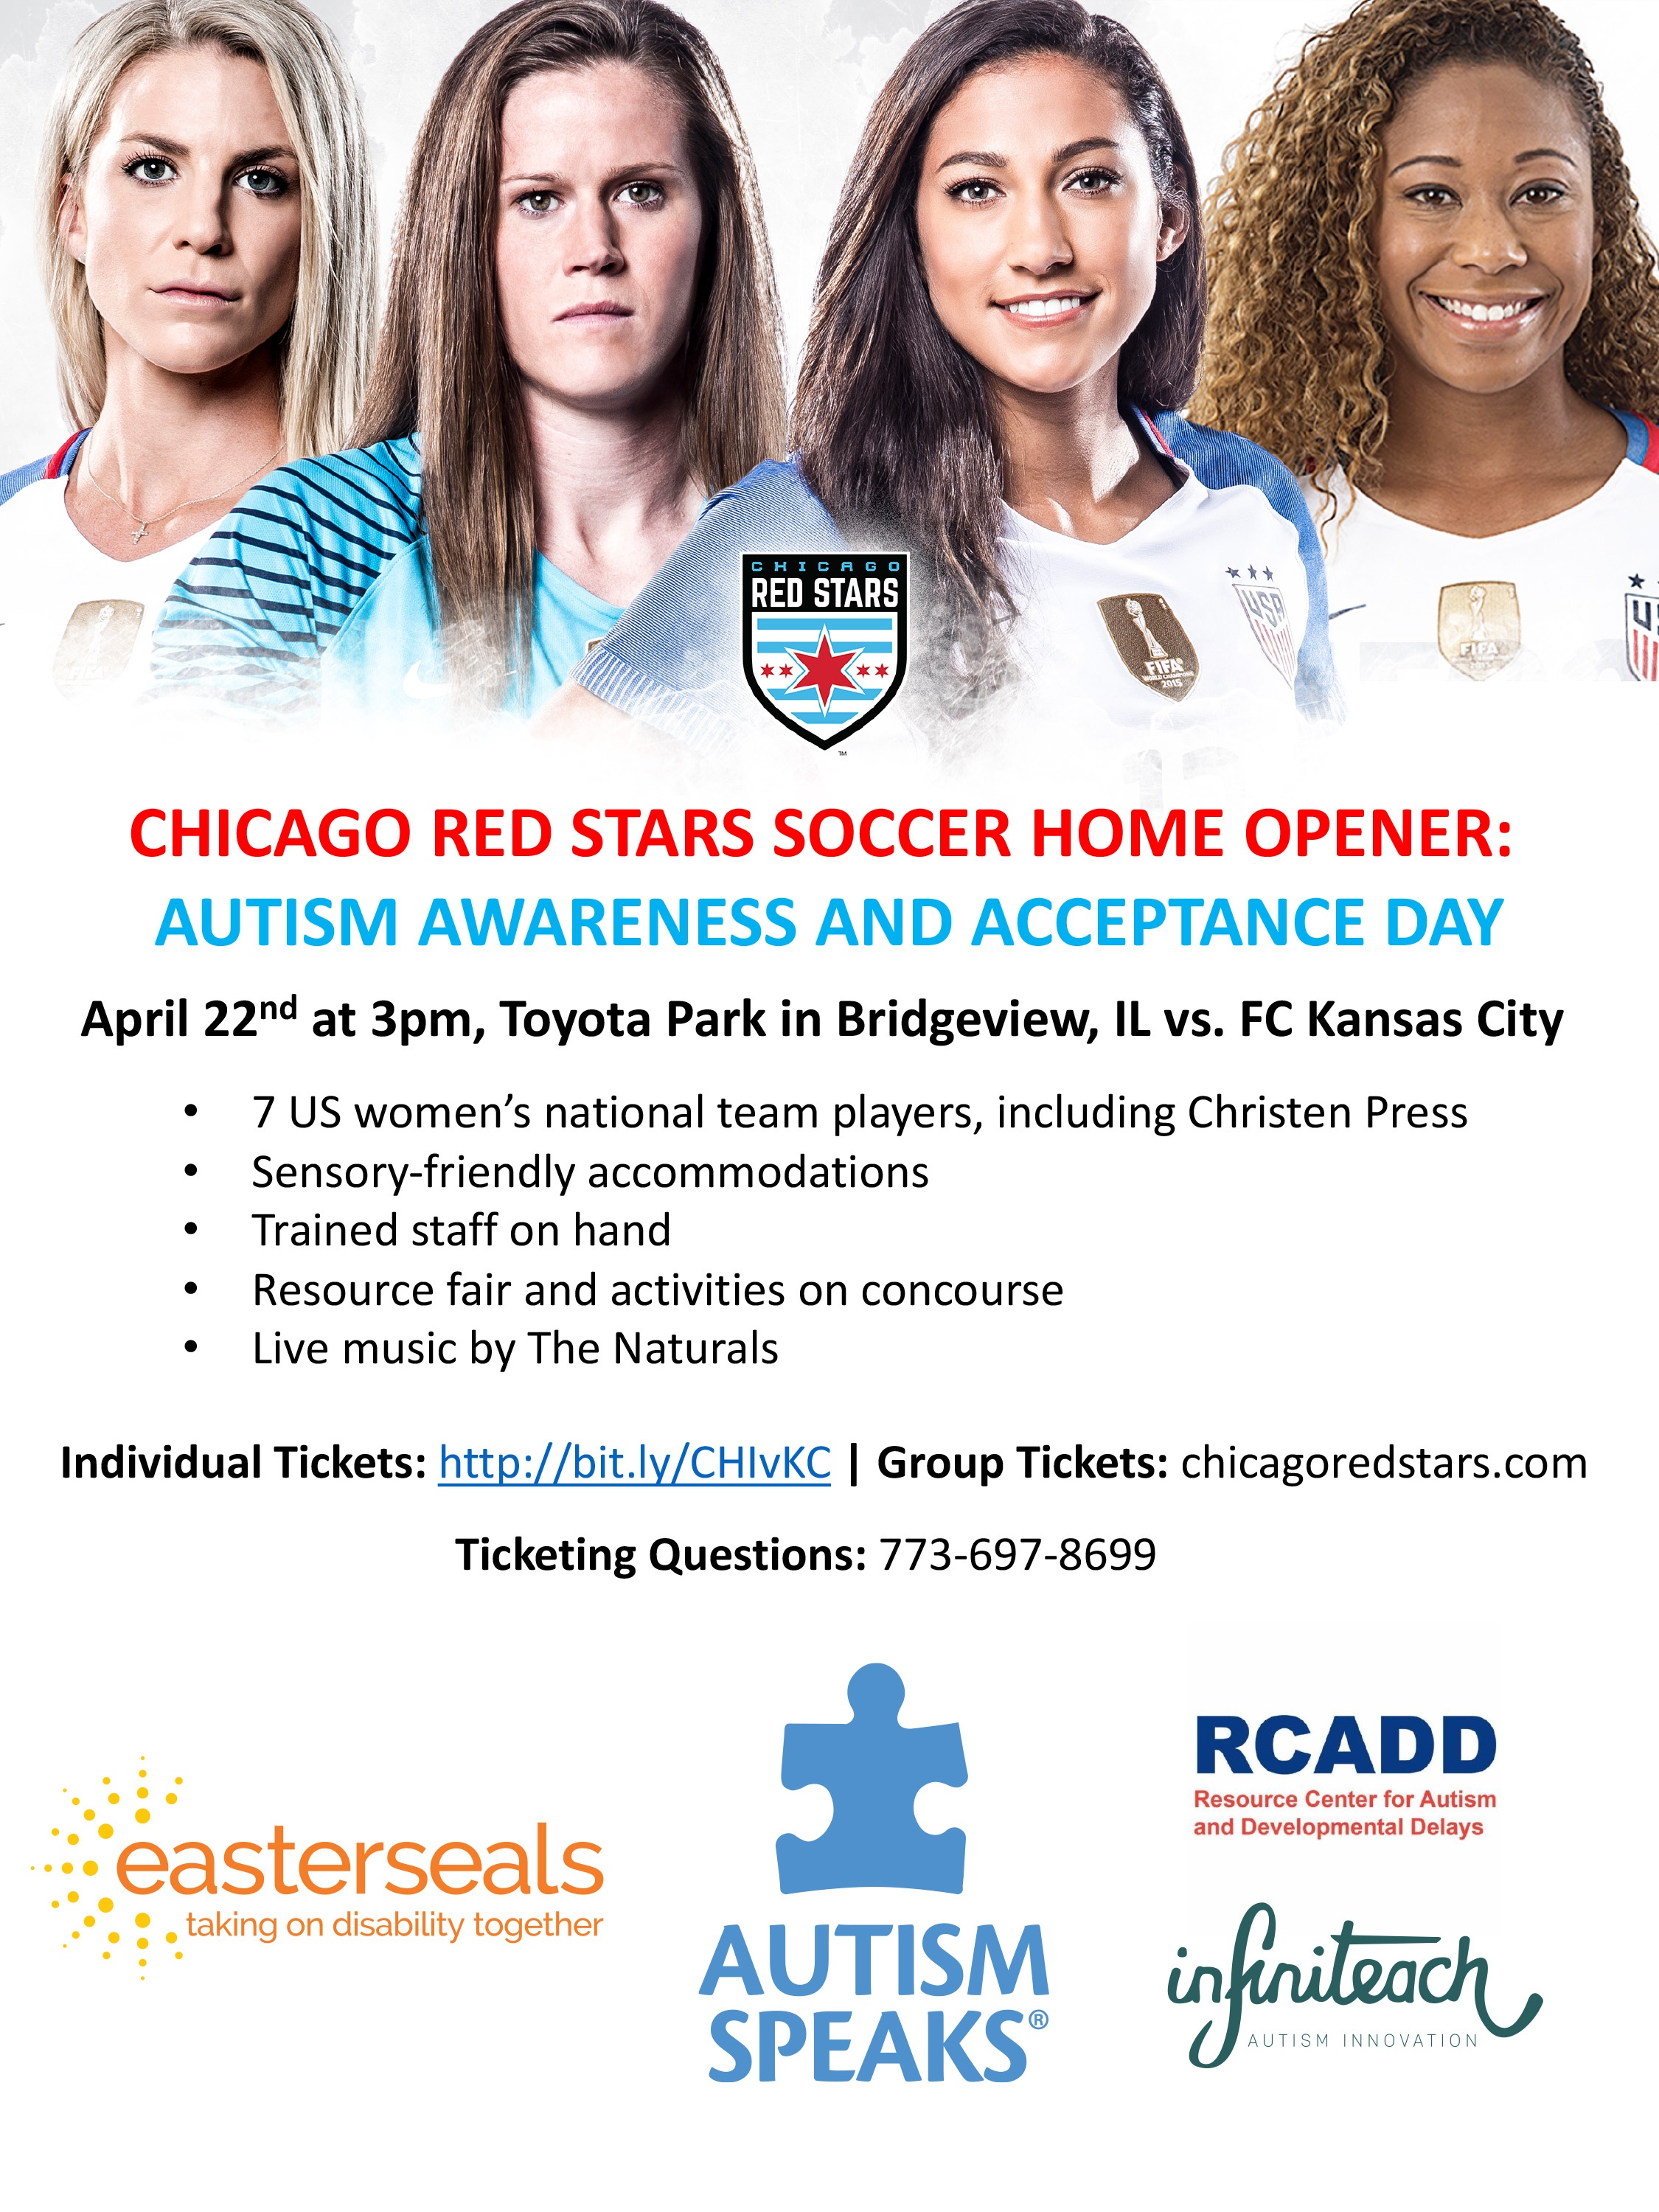 Autism Awareness & Acceptance Day – Chicago Red Stars Go Sensory Friendly for Autism Awareness Month